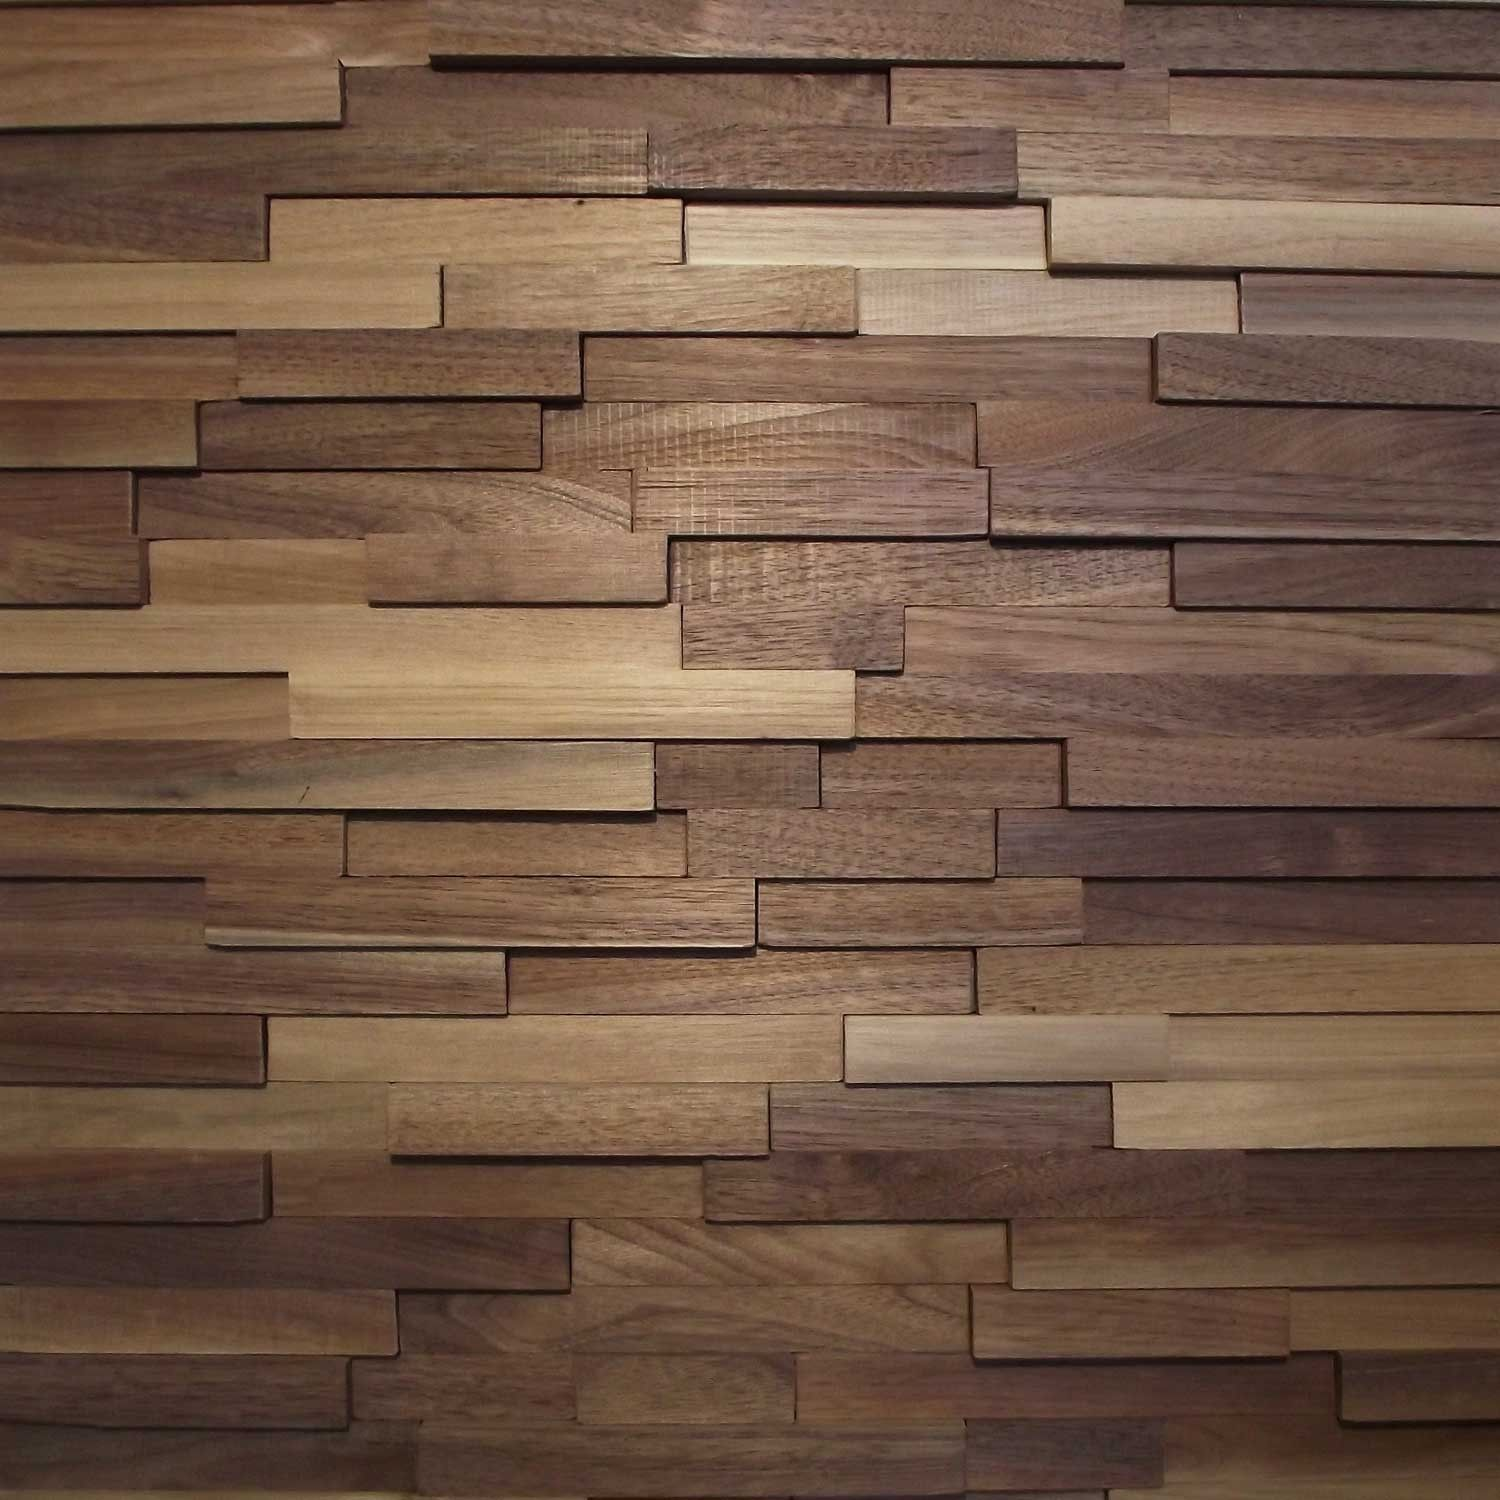 Holzwand Terrasse Modern Wood Wall Paneling Wall Paneling Ideas Make Up Areas